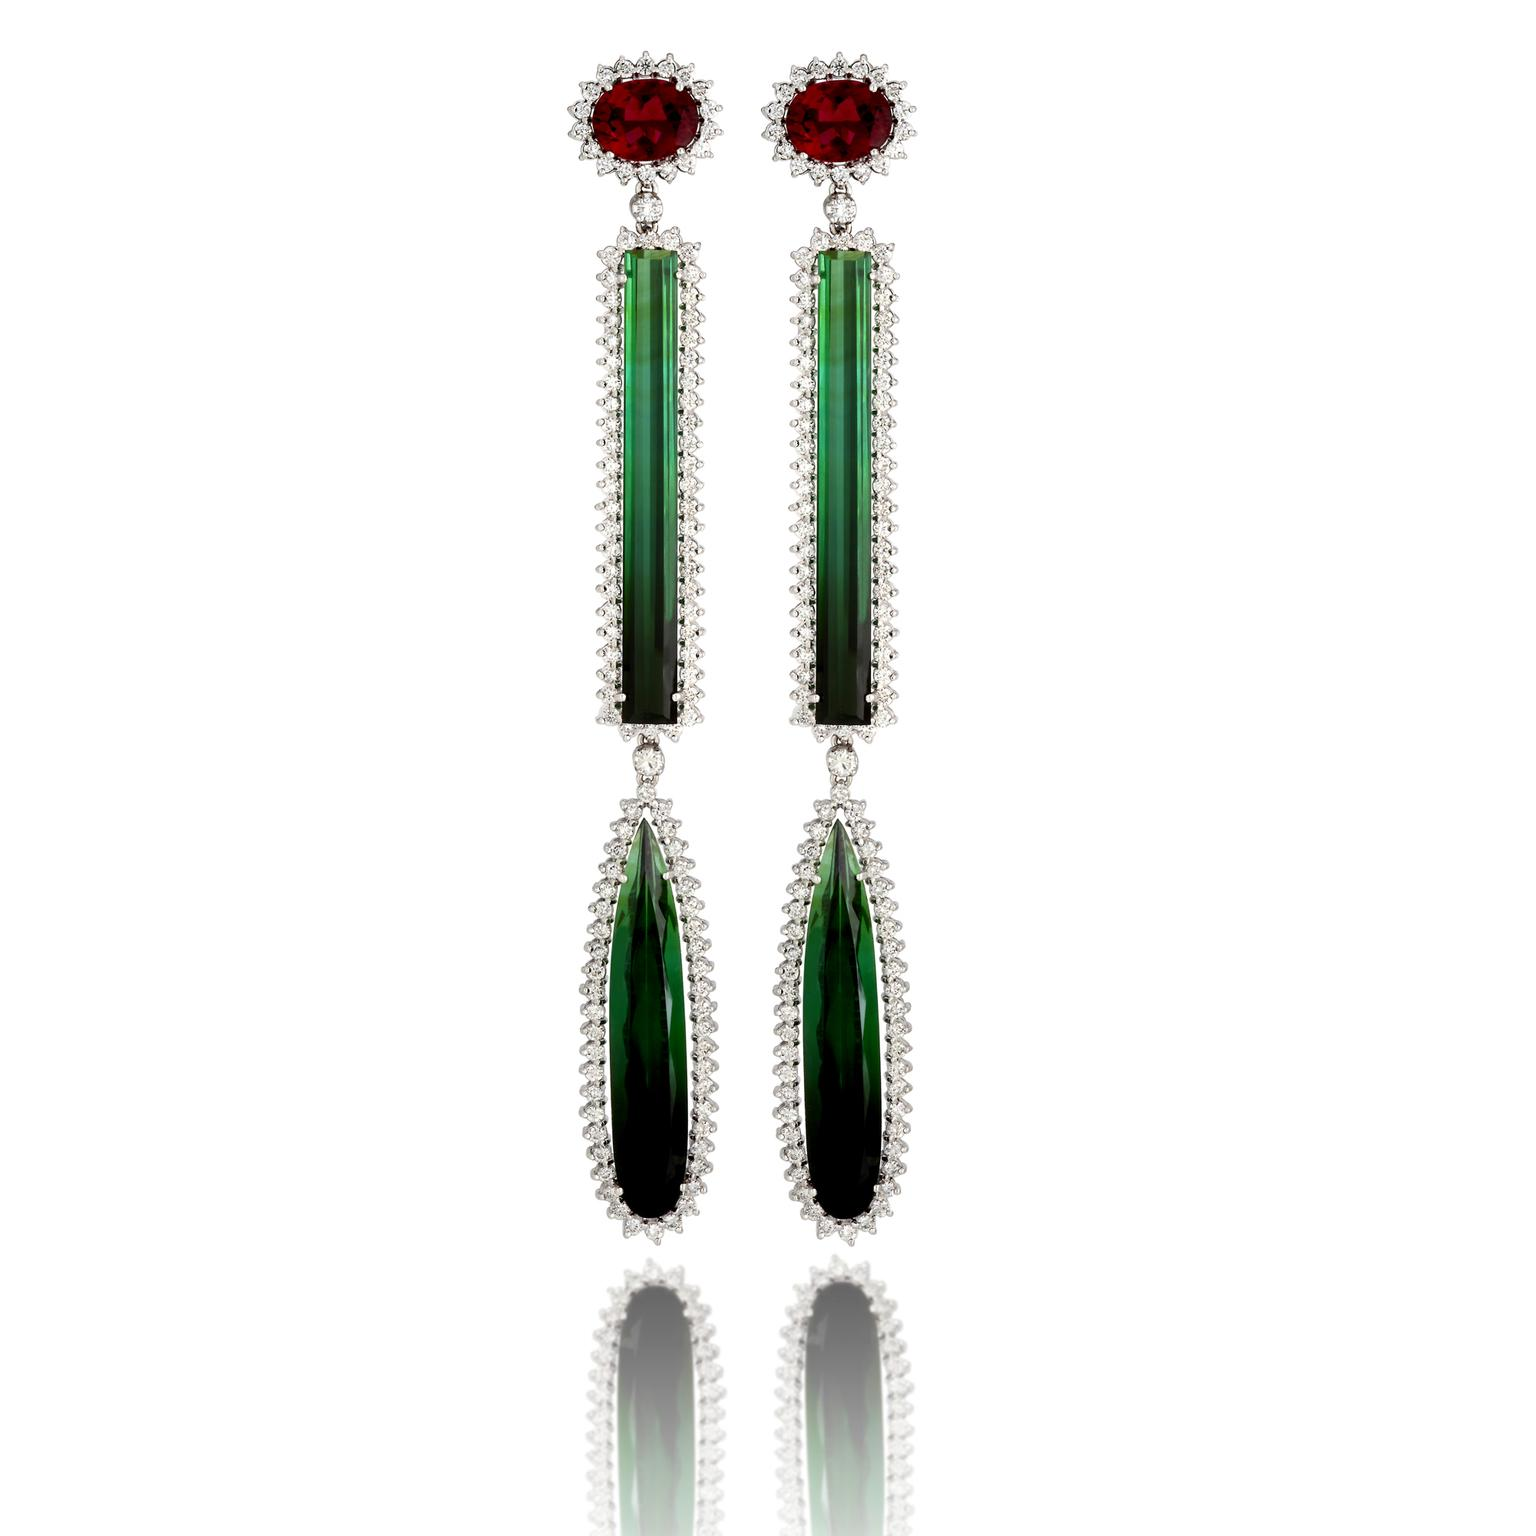 Vianna Brasil Raffinato white gold earrings